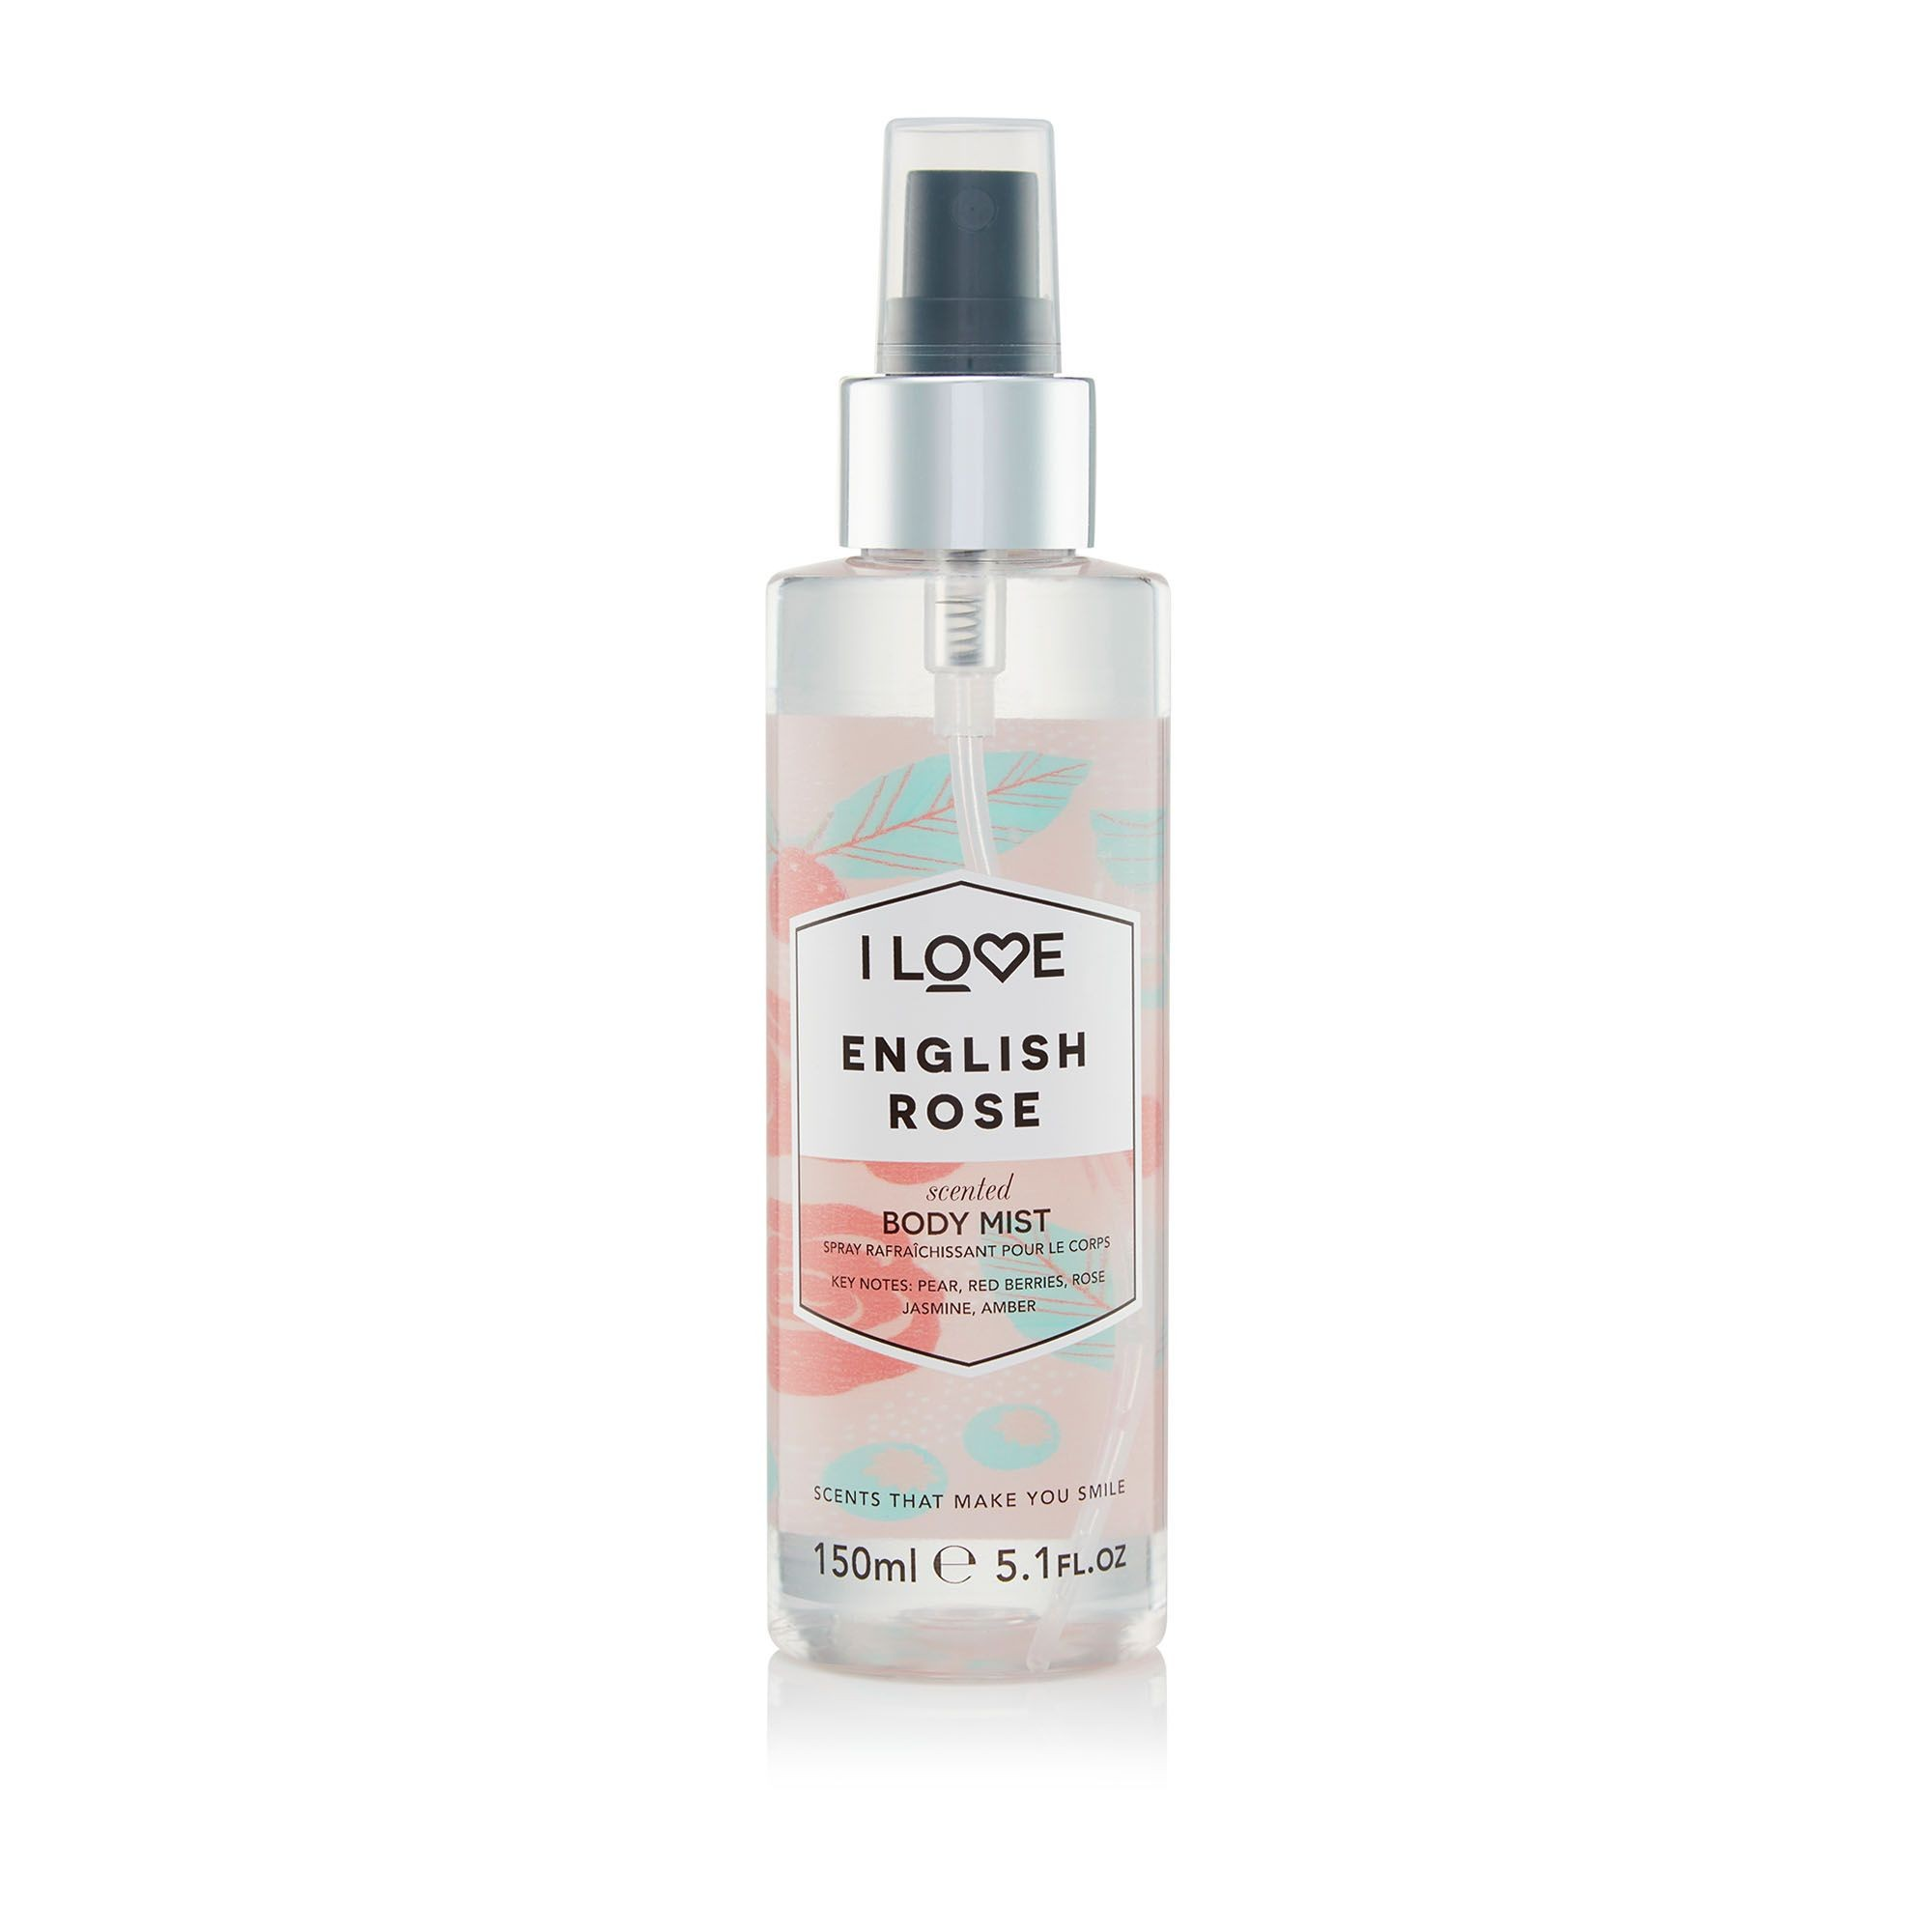 Bodyspray - Body Mist